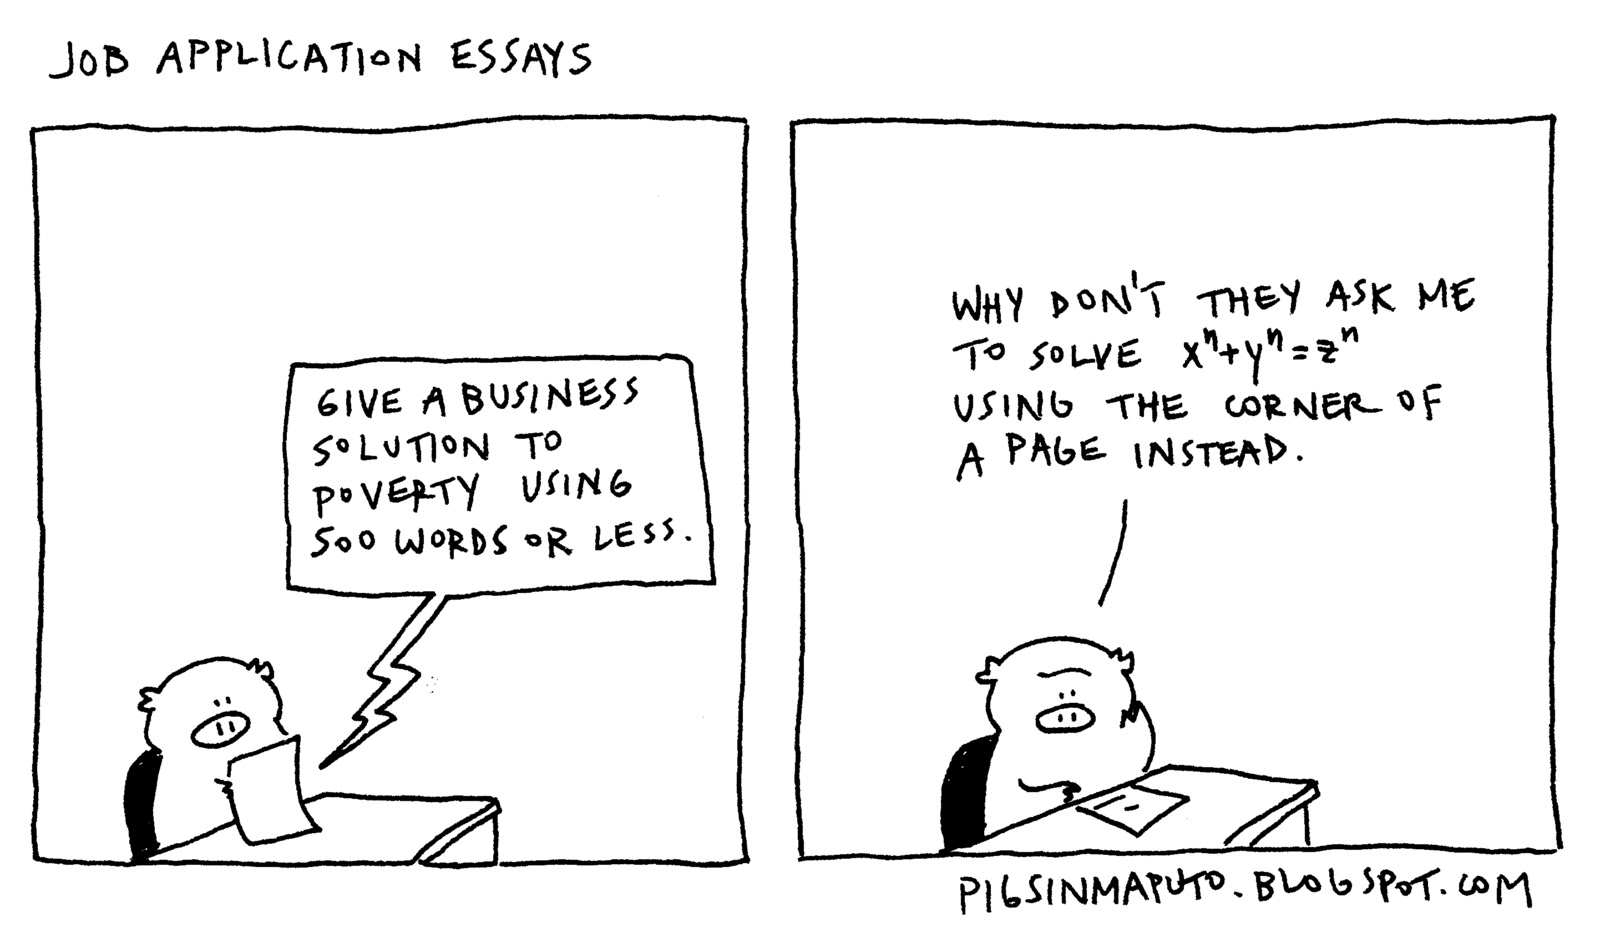 Job application essays